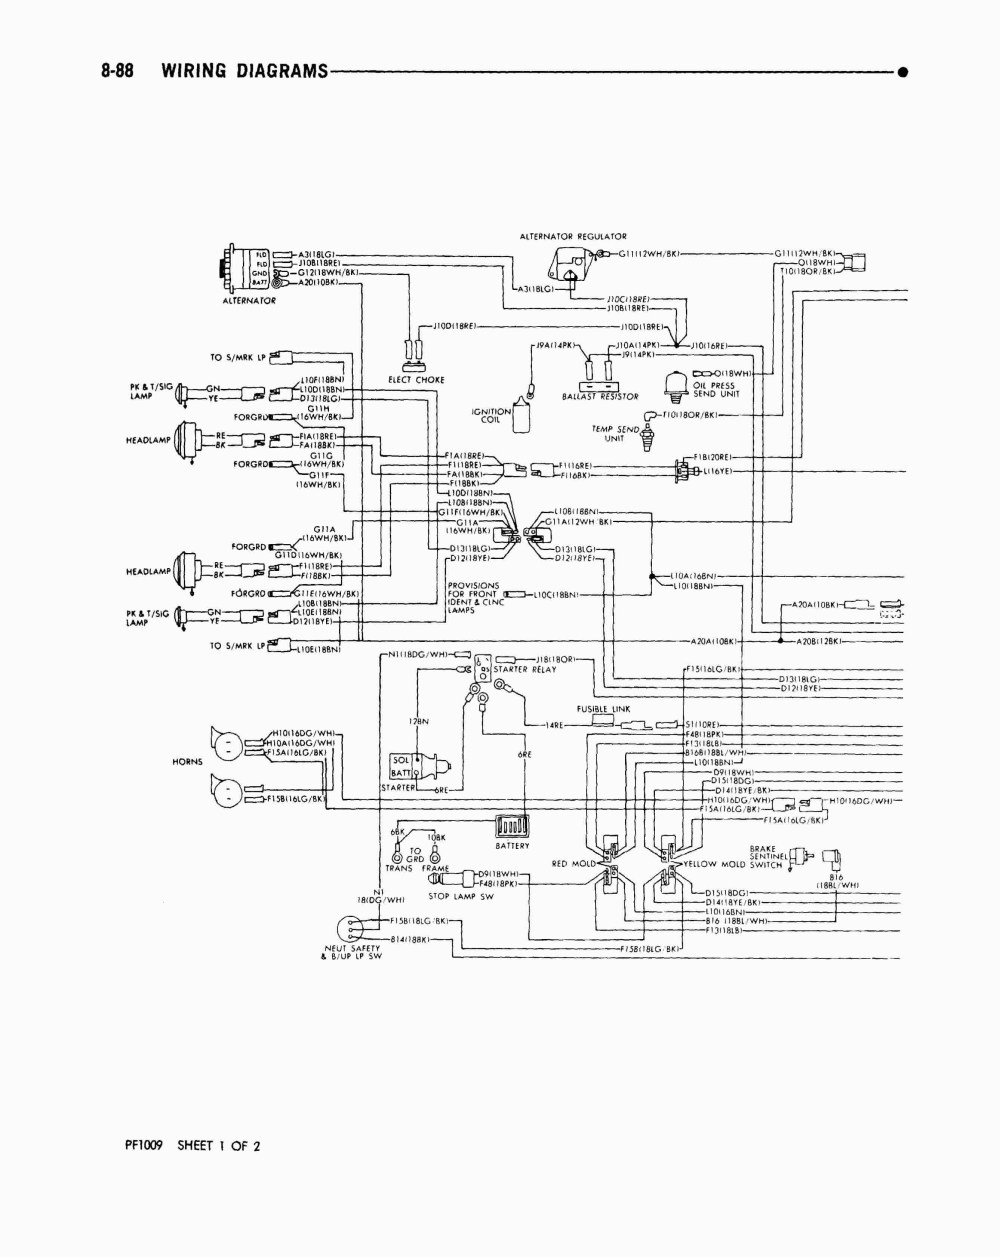 medium resolution of 07 ford f53 wiring diagram wiring diagram schema2007 ford f53 wiring diagrams wiring diagram data today